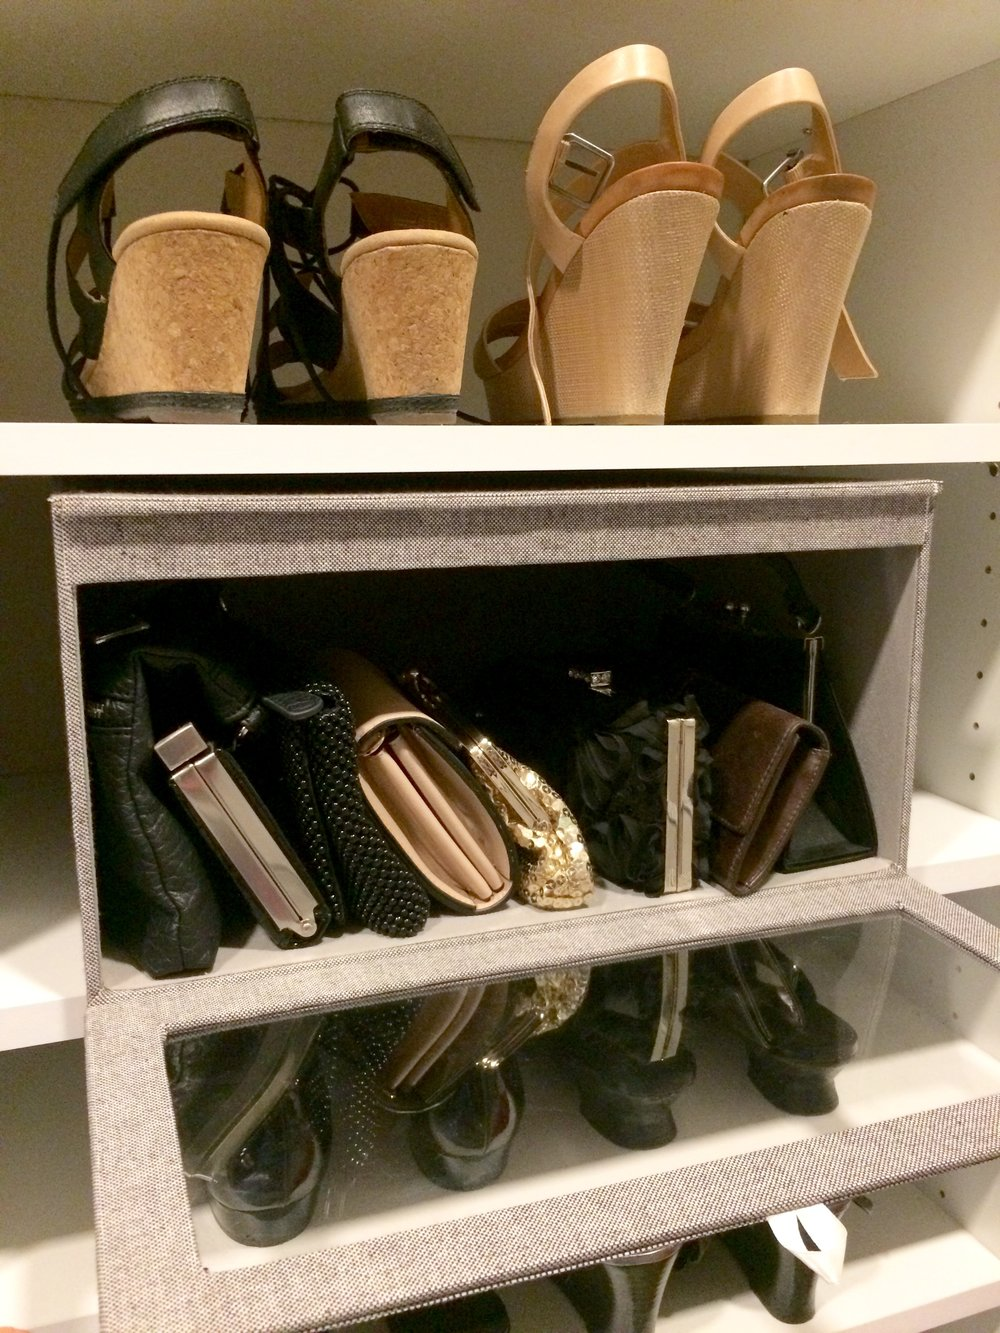 A closet storage box with a transparent panel keeps valuables organized and accessible.  Call Closets of Tulsa  now for your FREE consultation and 3-D closet design:  918.609.0214